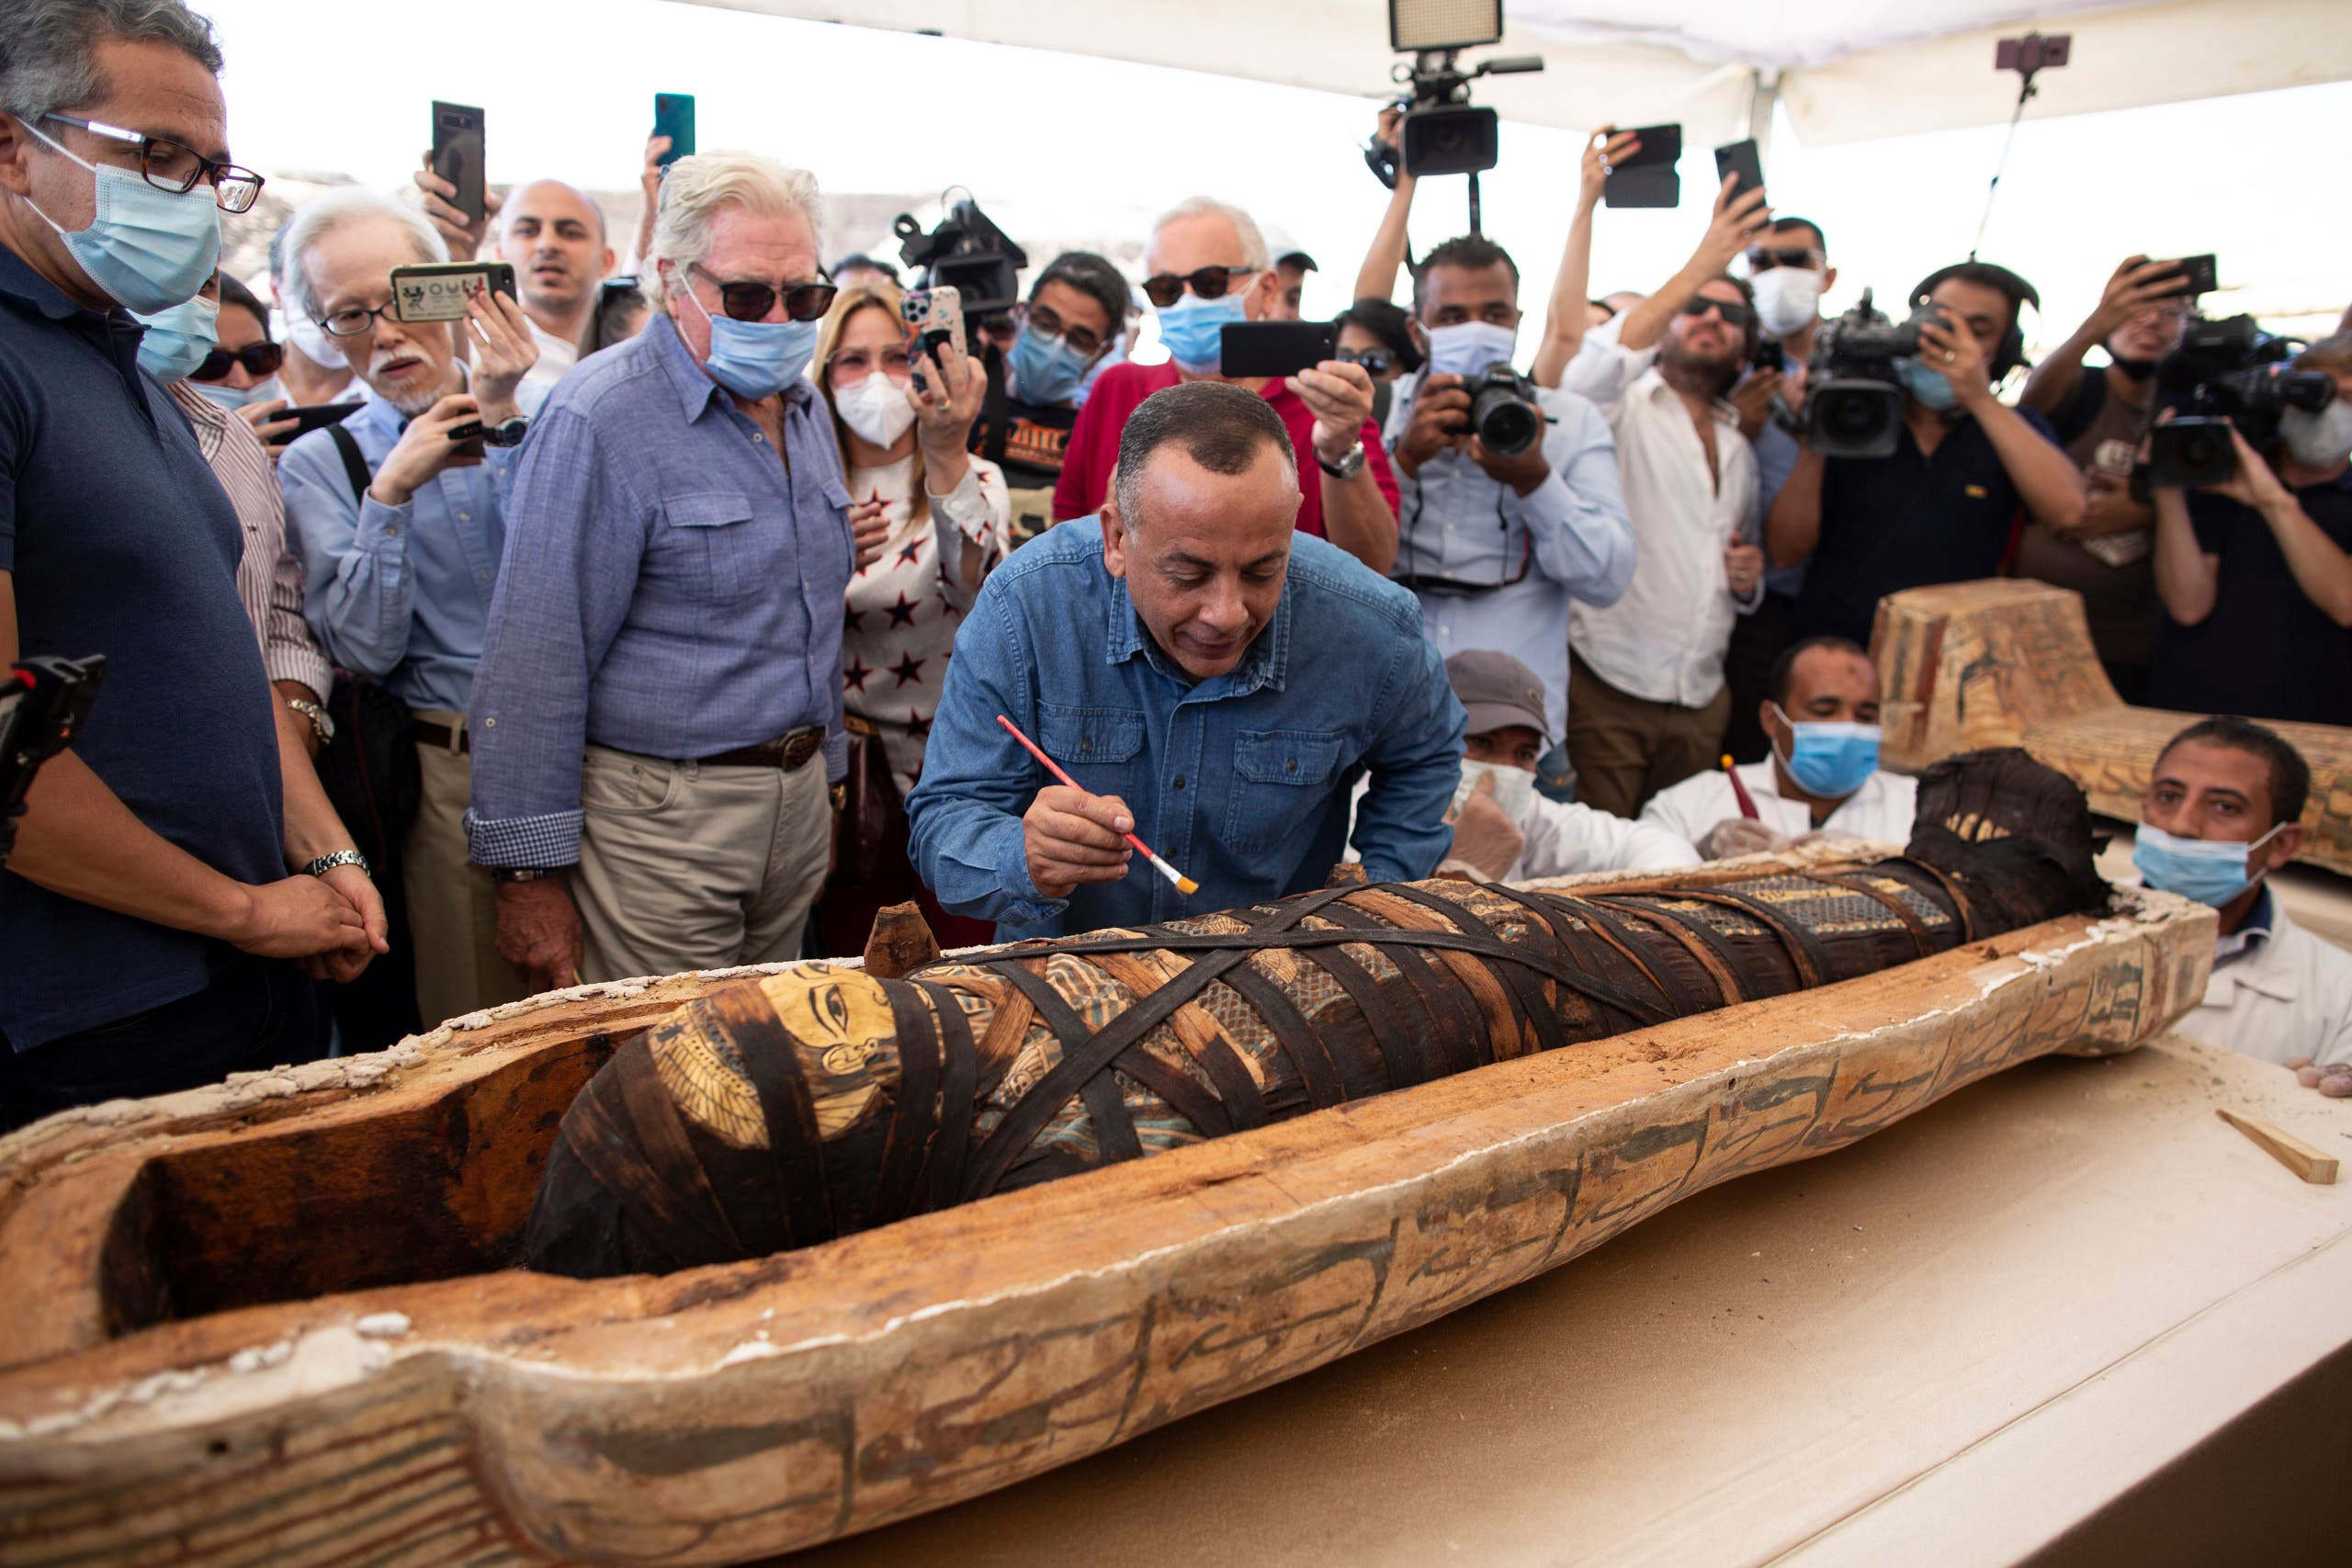 Mostafa Waziri, the secretary-general of the Supreme Council of Antiquities, center, reacts after opening the sarcophagus that is around 2500 years old at the Saqqara archaeological site, 30 kilometers (19 miles) south of Cairo, Egypt, Saturday, Oct. 3, 2020. (AP)